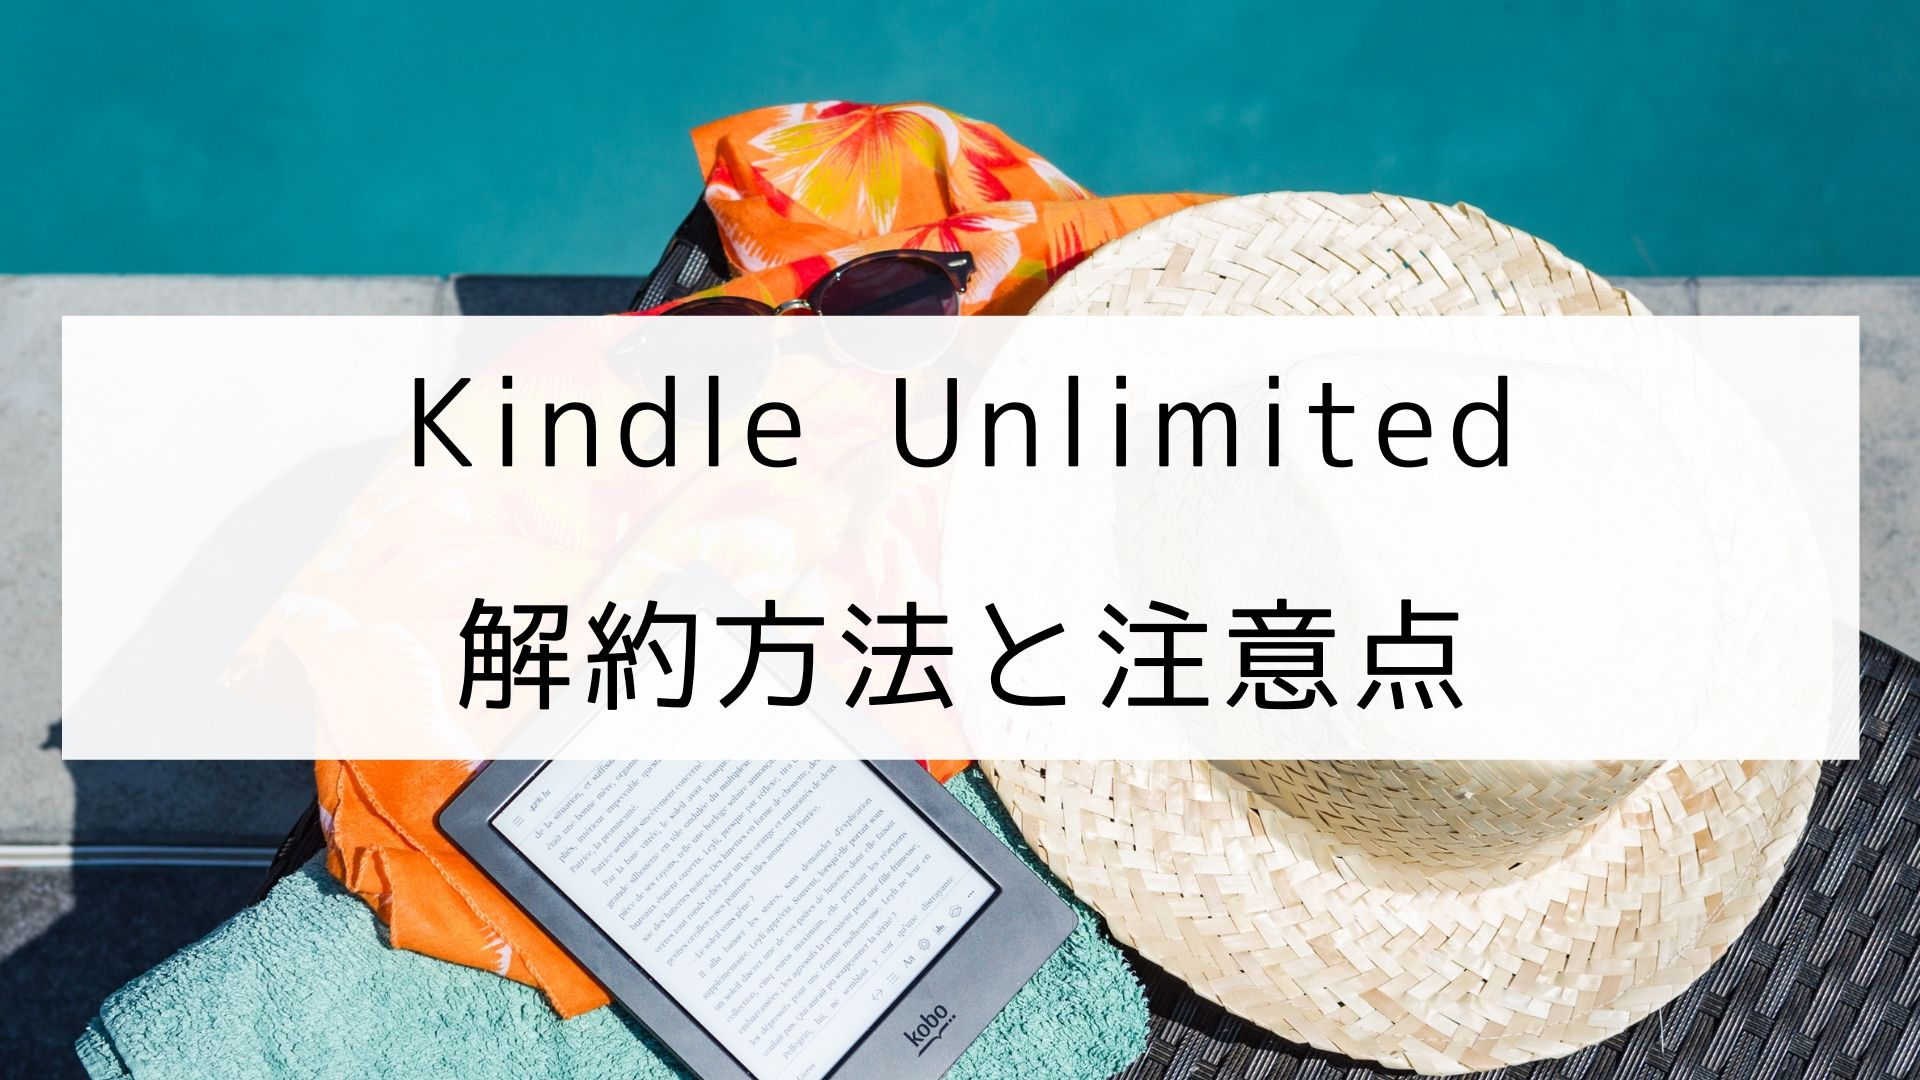 Kindle Unlimitedの解約方法まとめ【写真付きで解説】